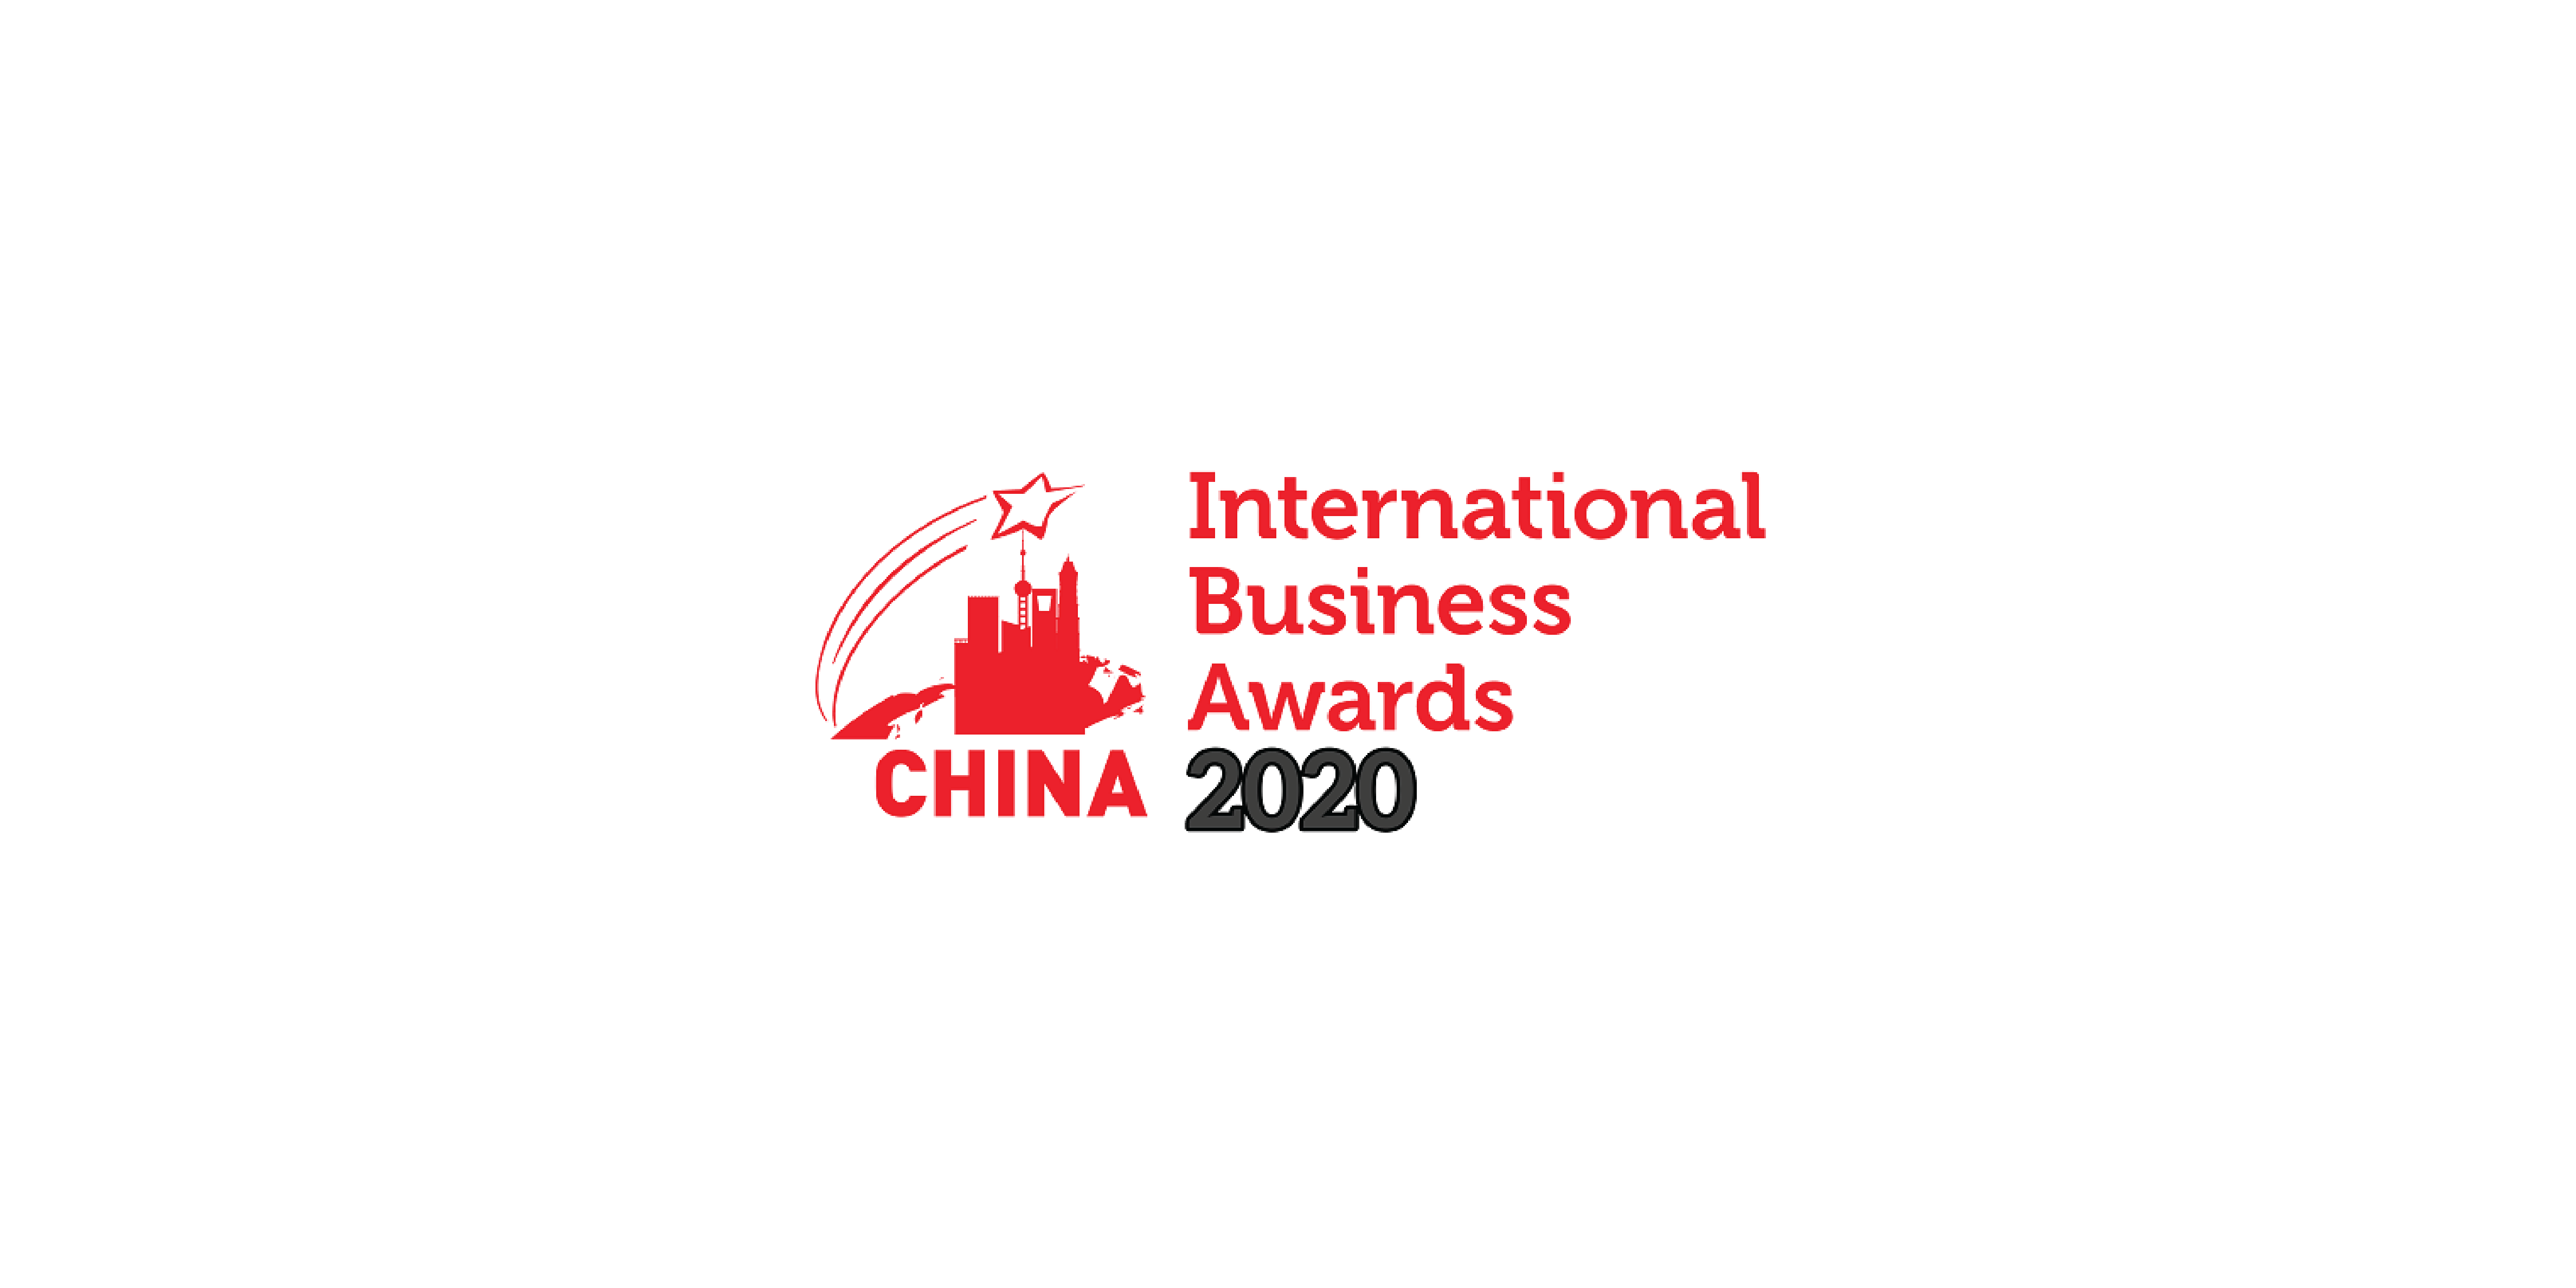 Tricor Group recognized as Premier Business Services Provider at China International Business Awards